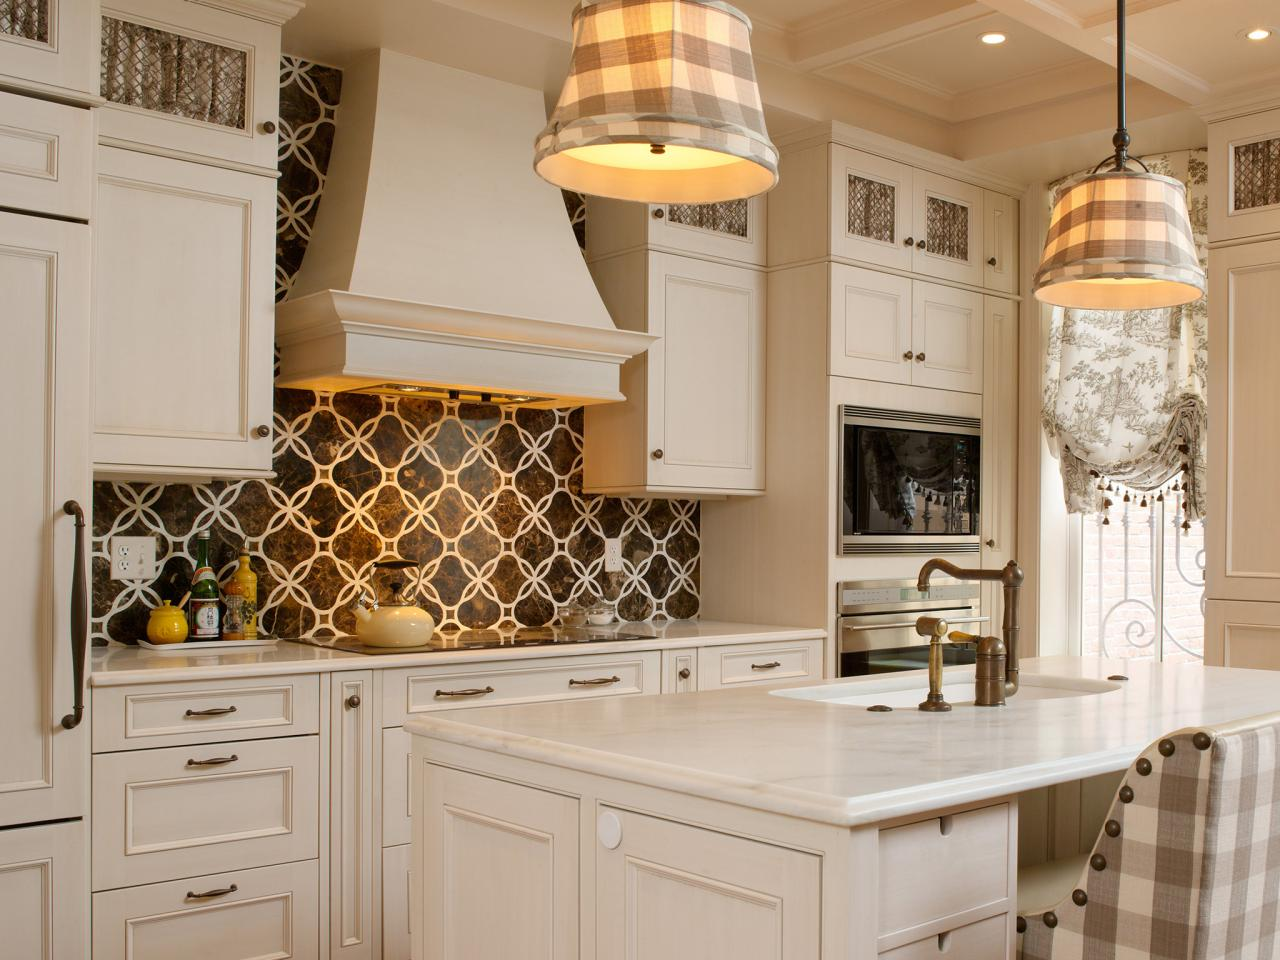 Kitchen Backsplash Options kitchen backsplash design ideas | hgtv